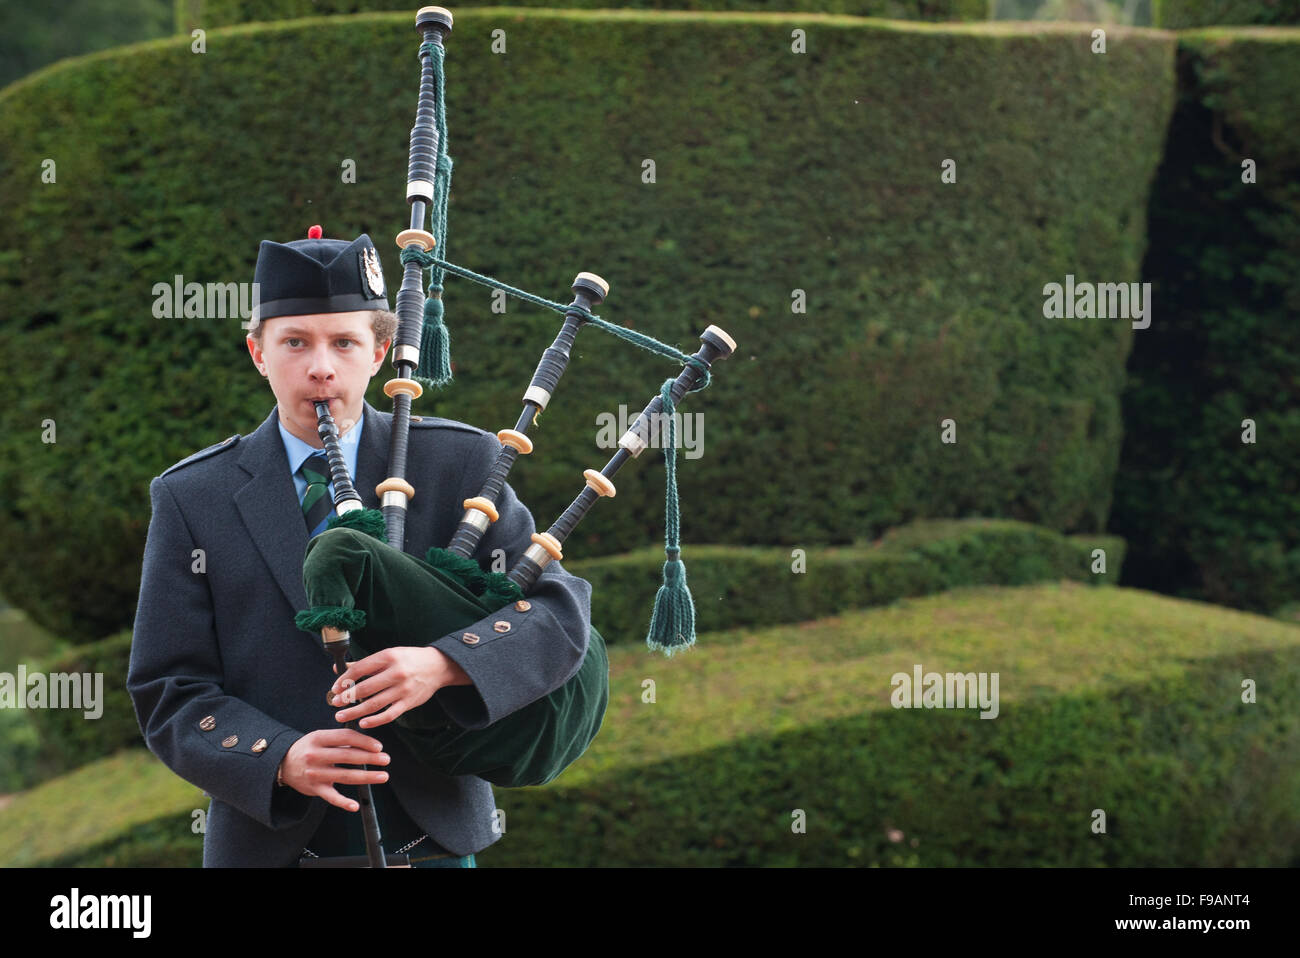 Playing Bagpipes Stock Photos & Playing Bagpipes Stock